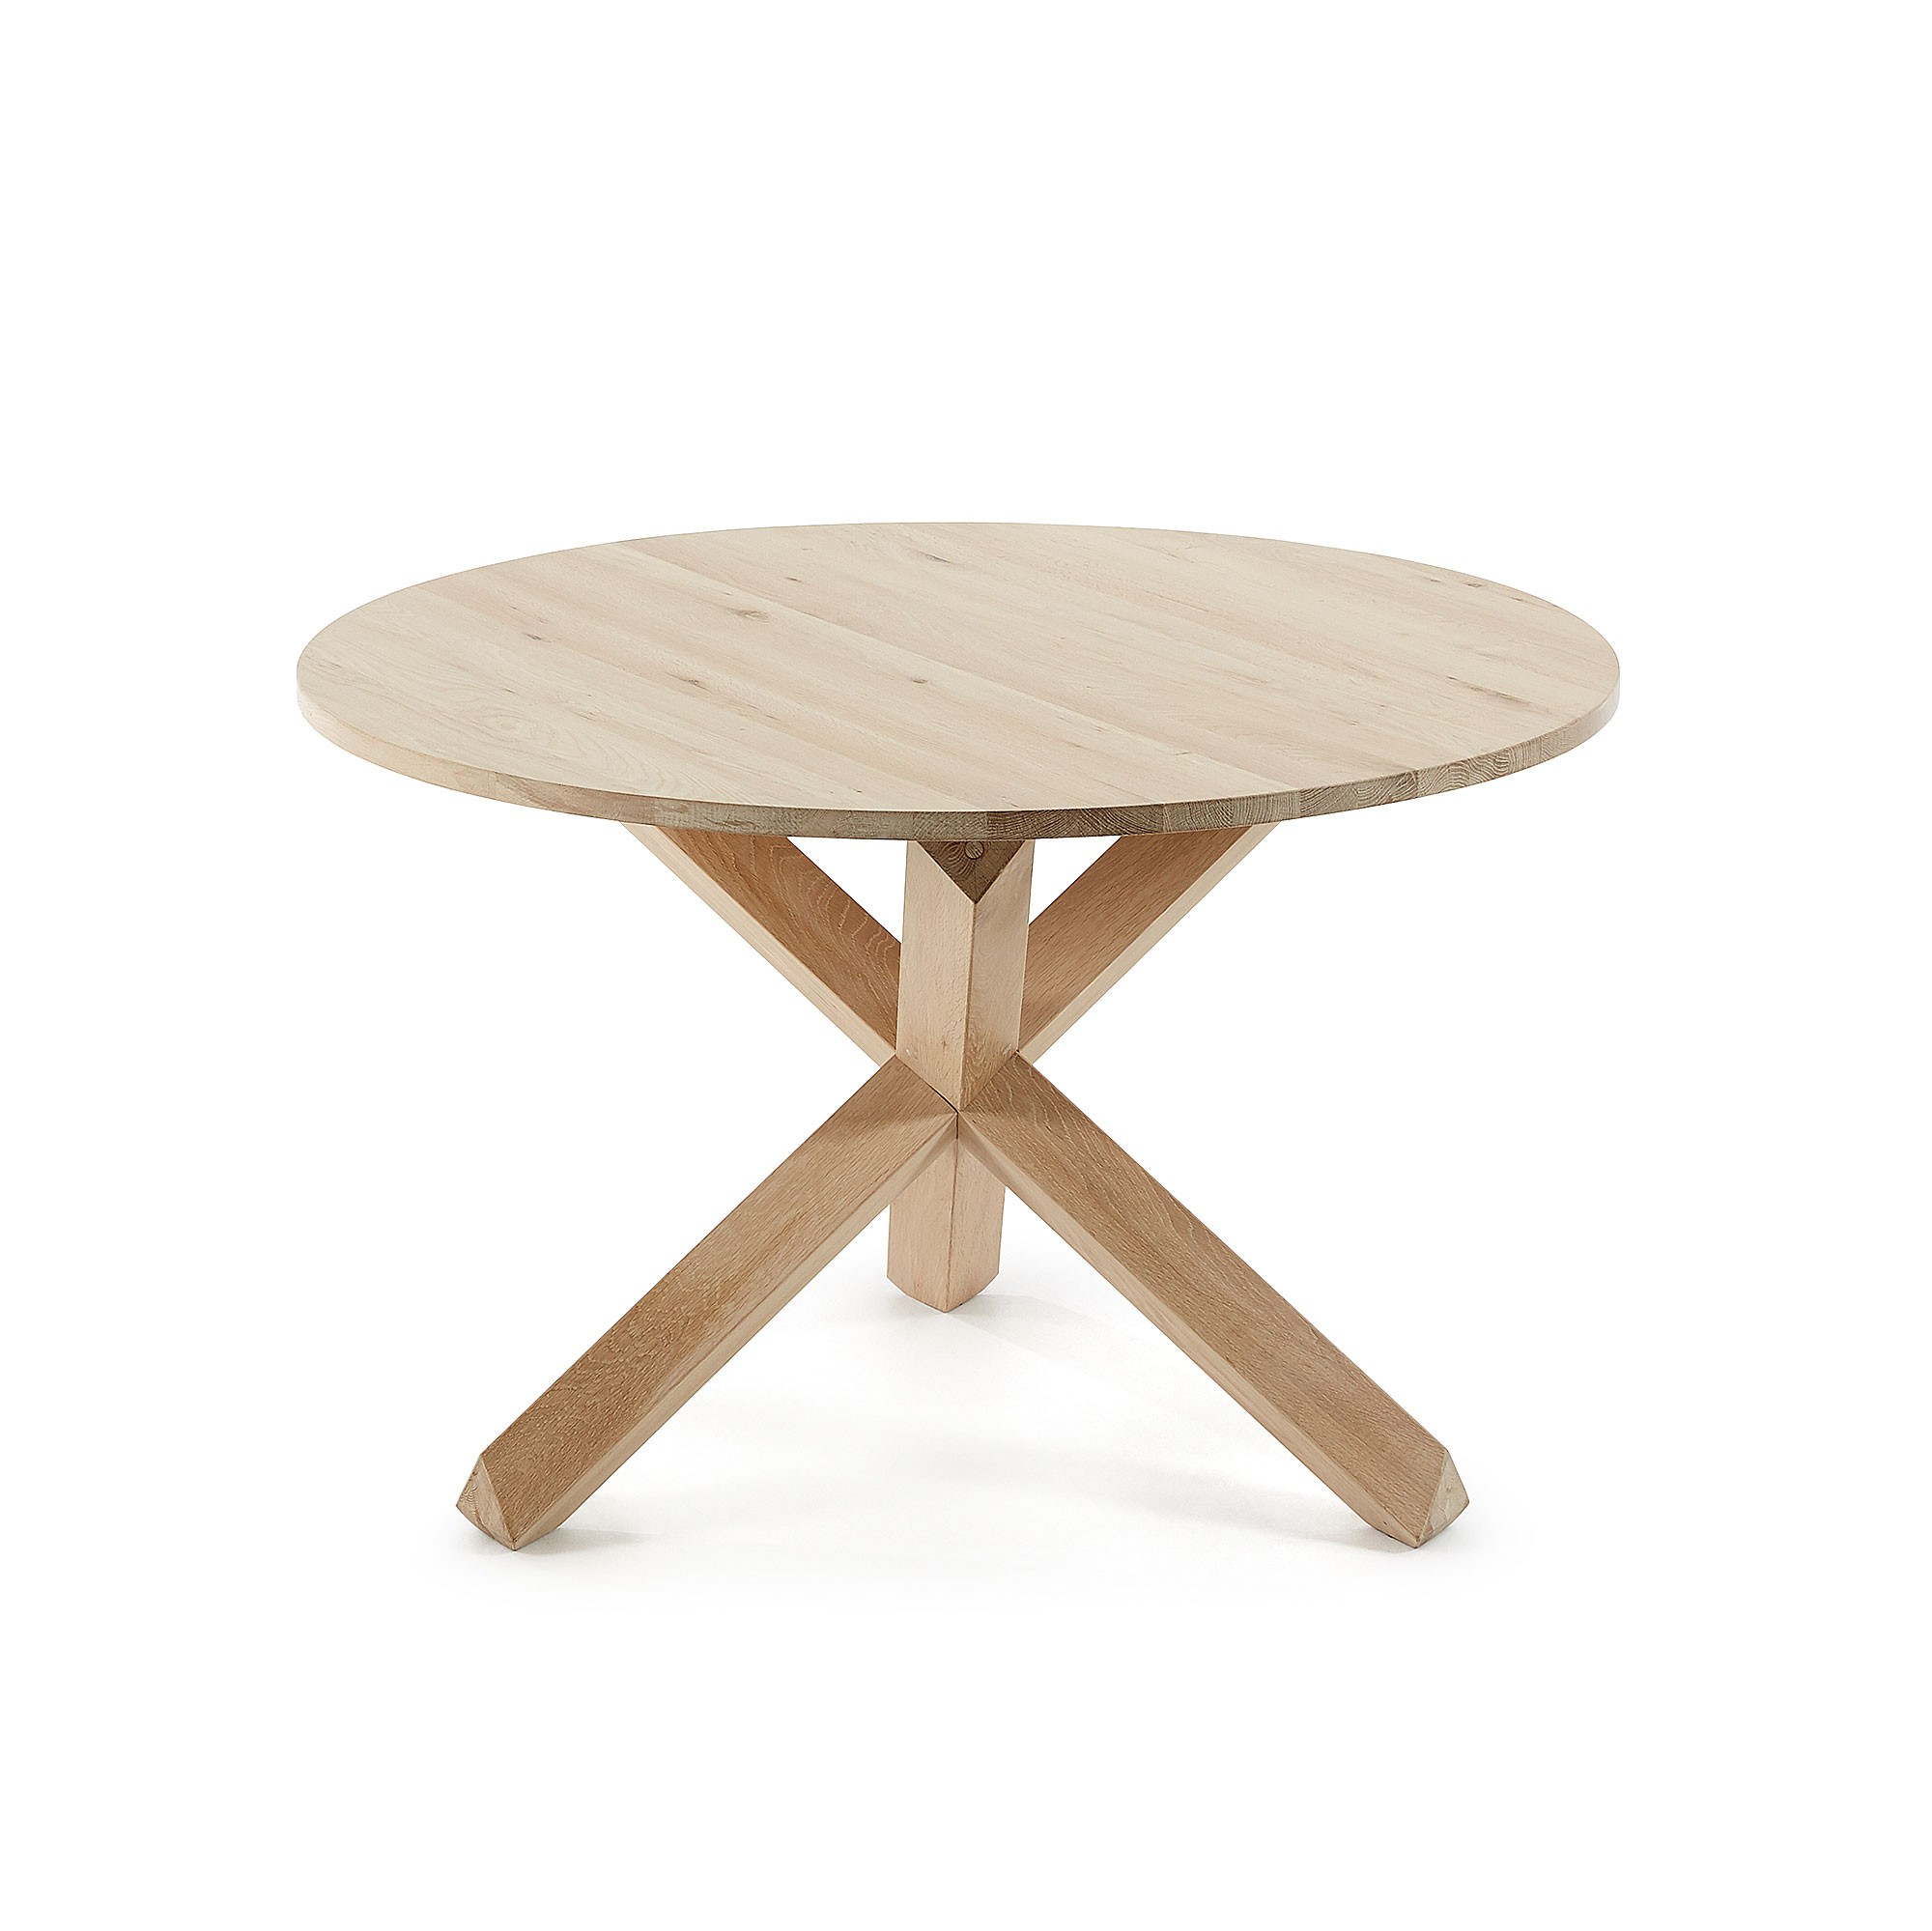 Haydon Oak Timber Round Dining Table,Timber Top, 120cm